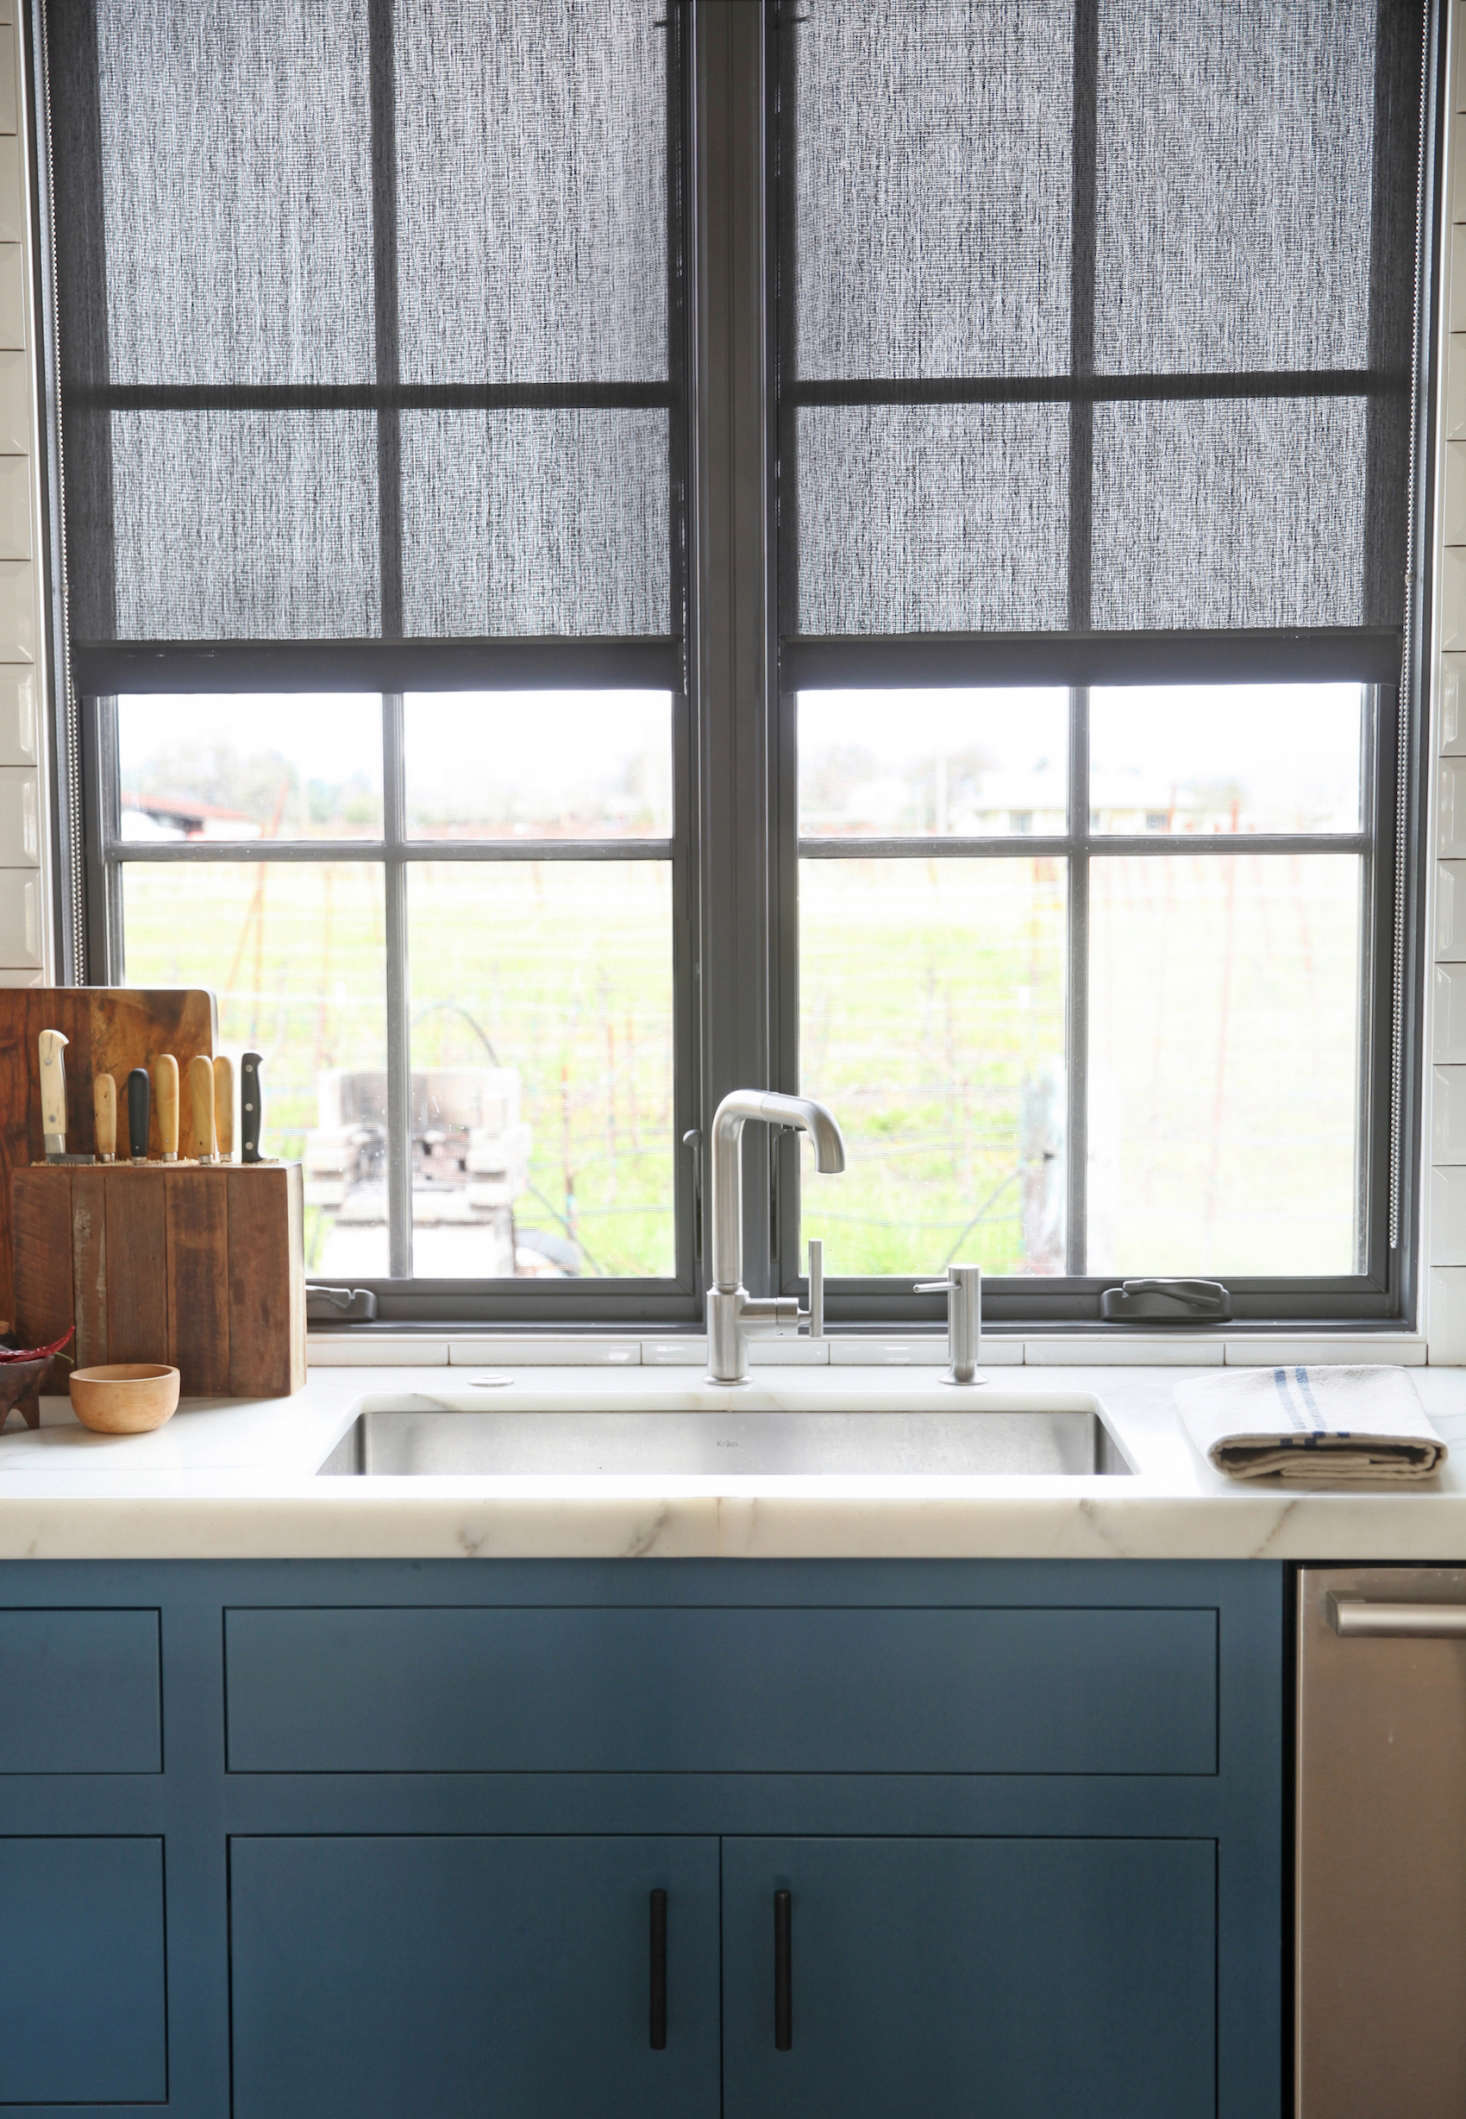 The kitchen window overlooks a view of the environs; landscaping is still in progress. The faucet is by Kohler, the sink is from Kräus, and the countertops are white Calacatta Oro marble.